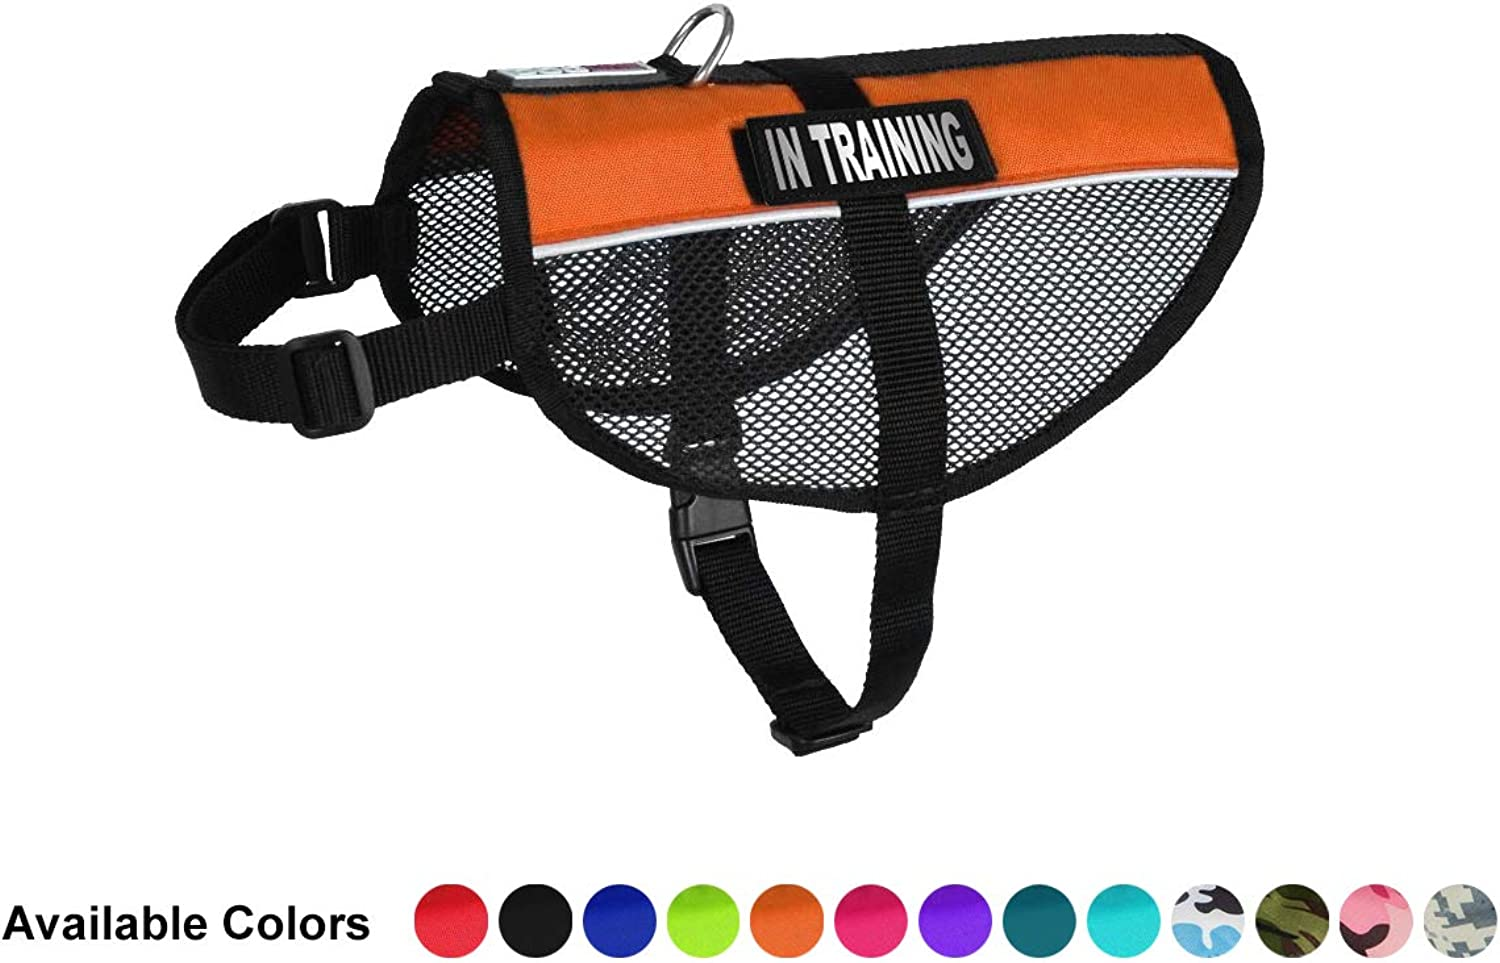 Dogline MaxAire MultiPurpose Mesh Vest for Dogs and 2 Removable In Training Patches, Medium, orange